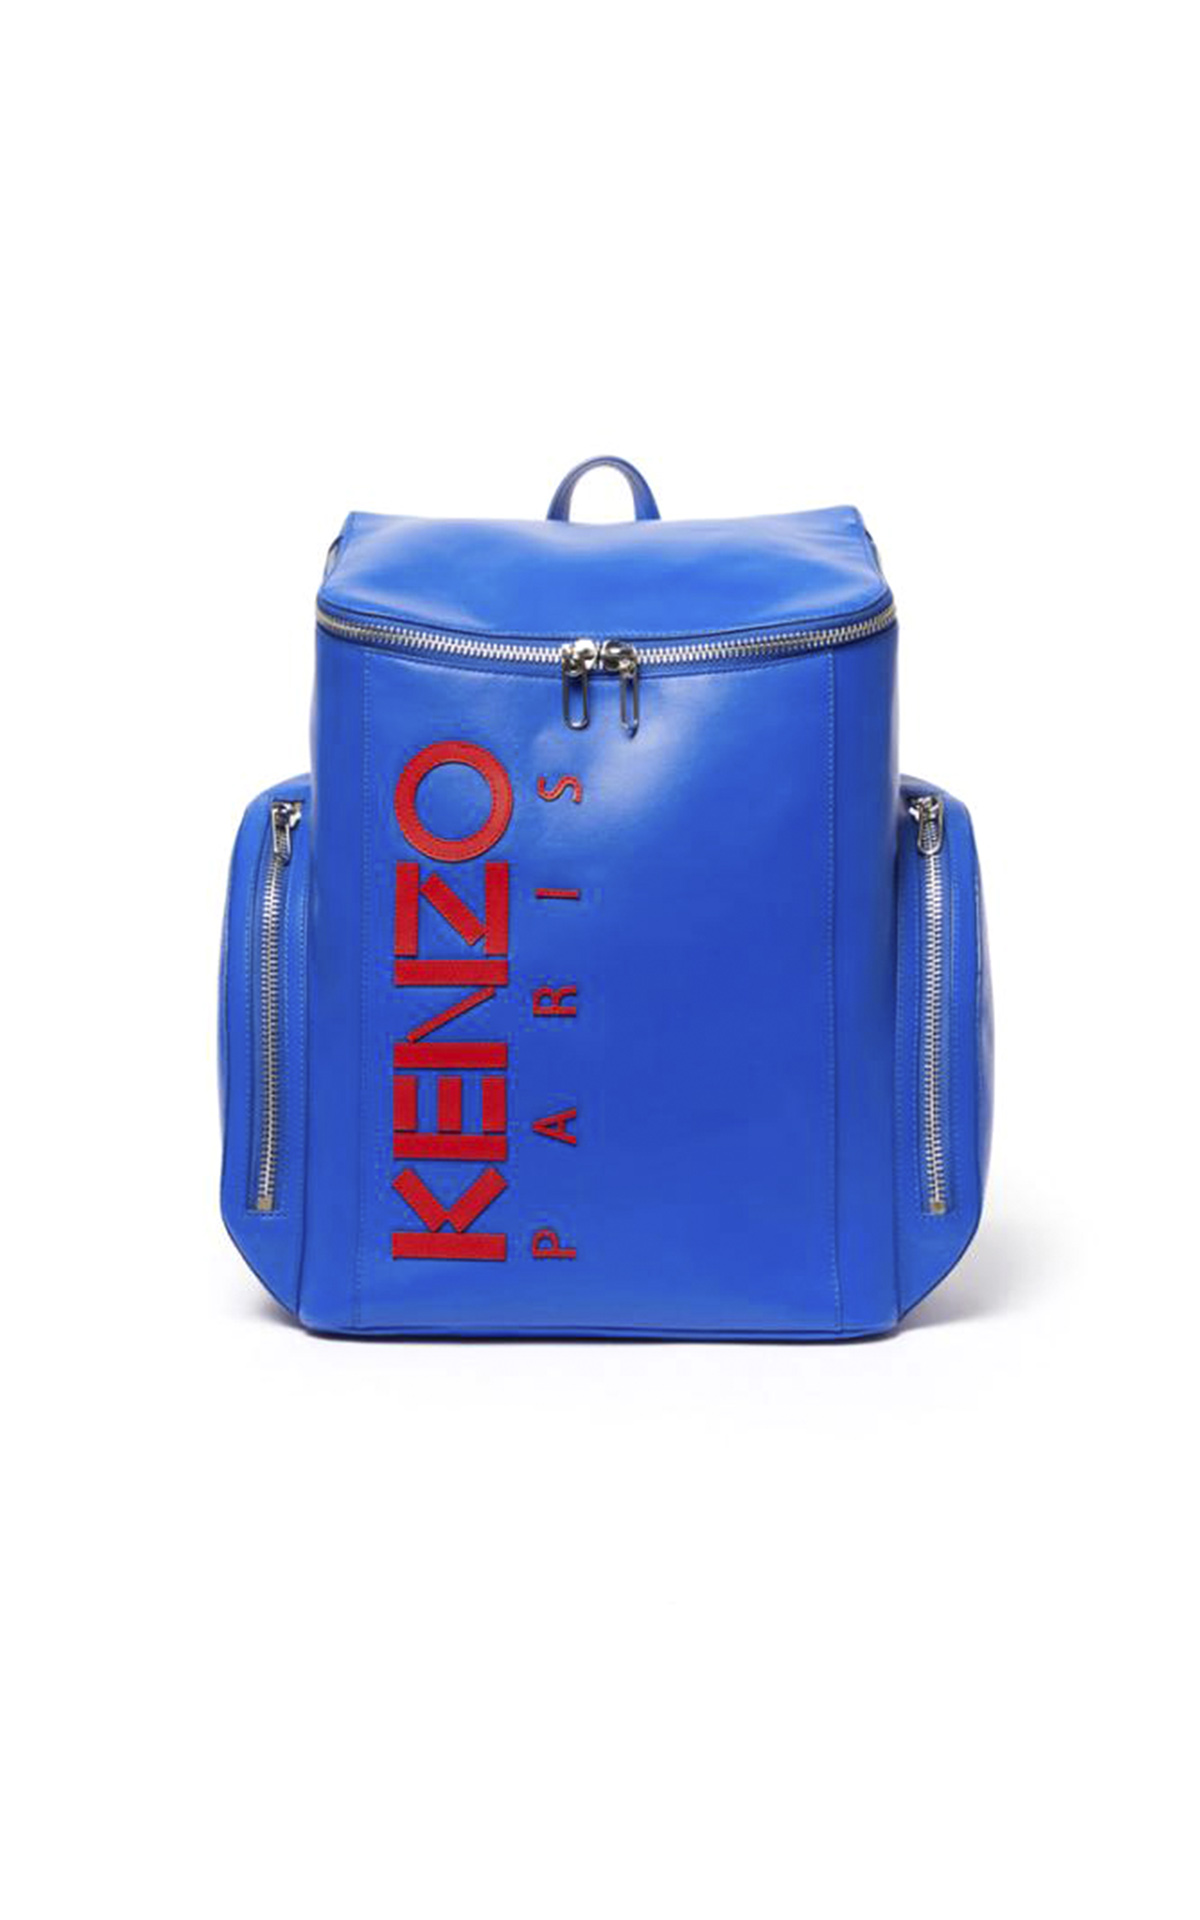 Blue backpack with red logo Kenzo